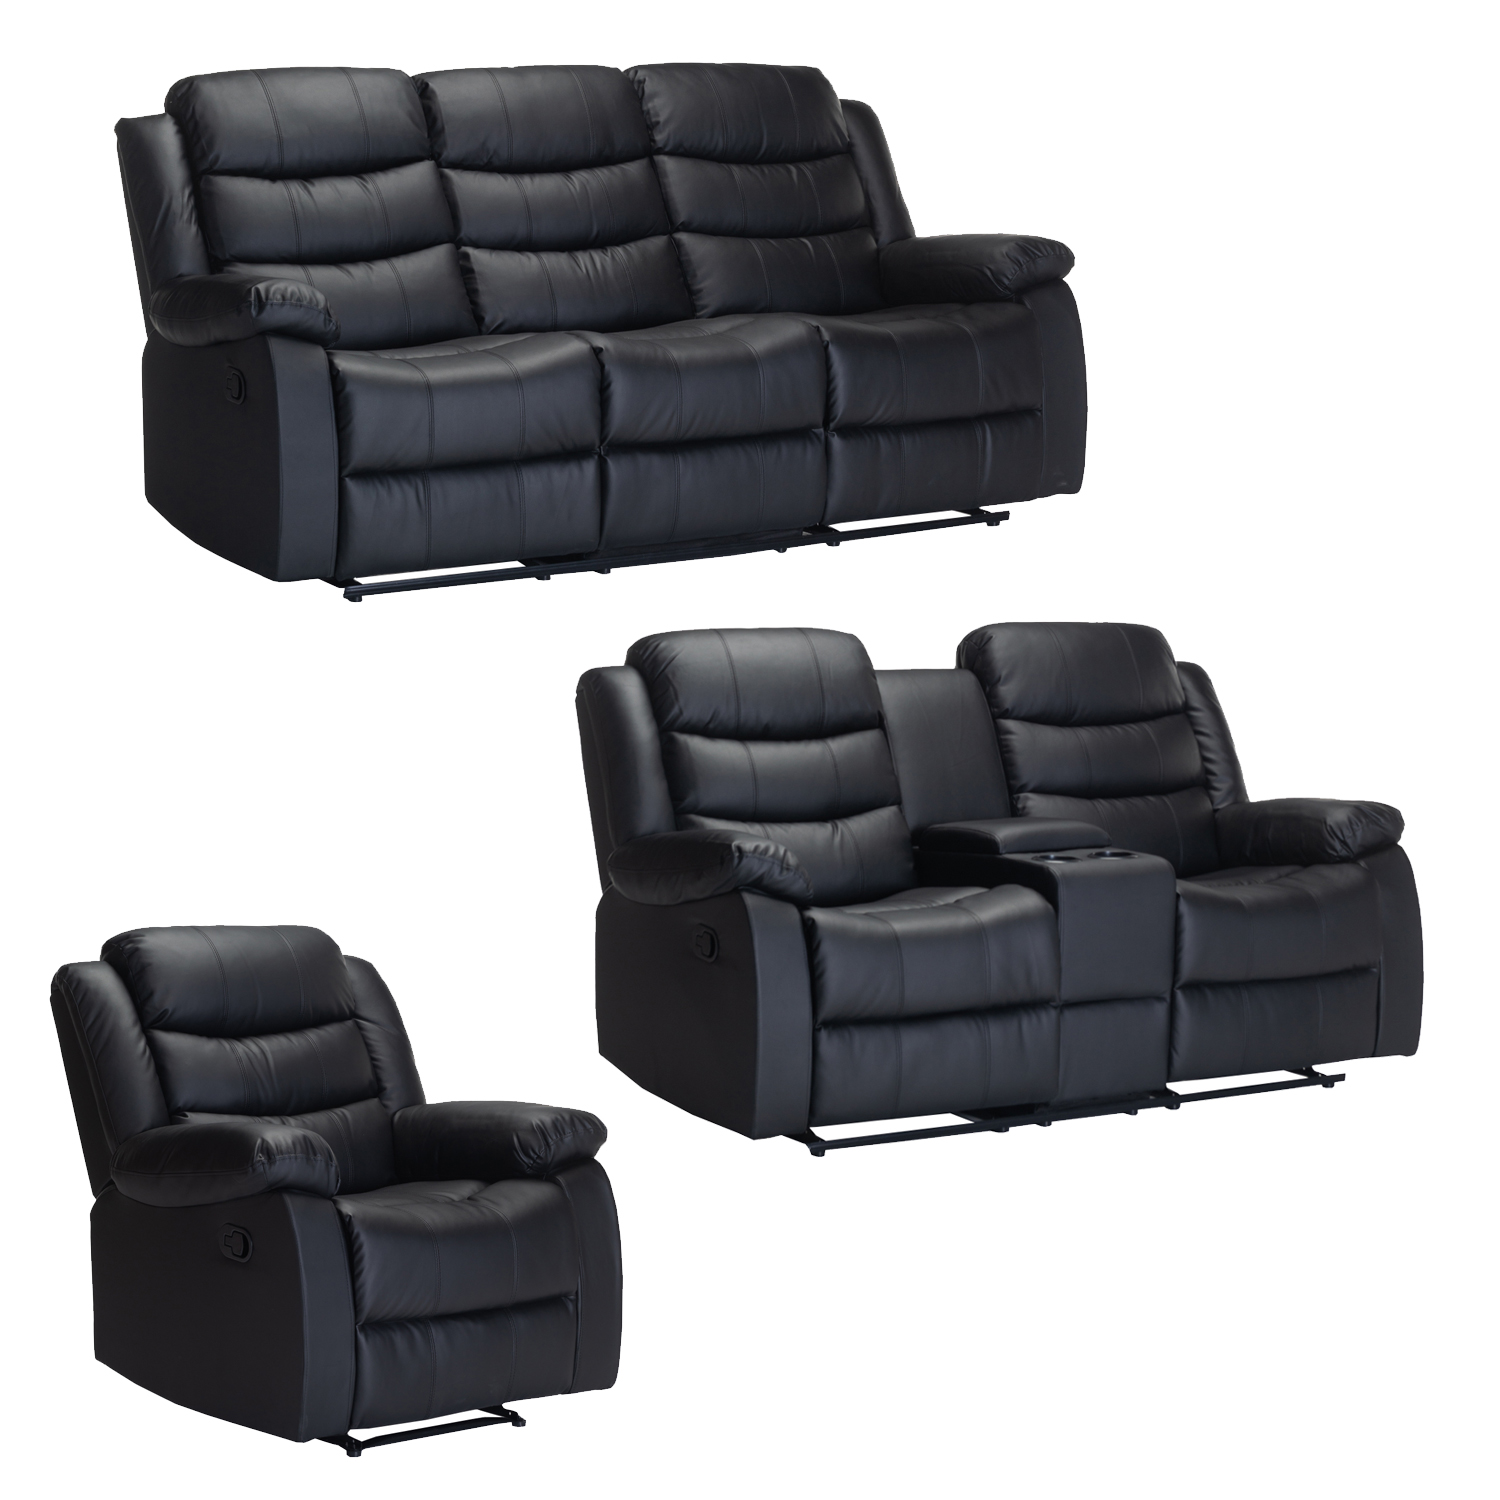 YUZI BONDED LEATHER 3 PC RECLINER SET WITH CONSOLE BLACK